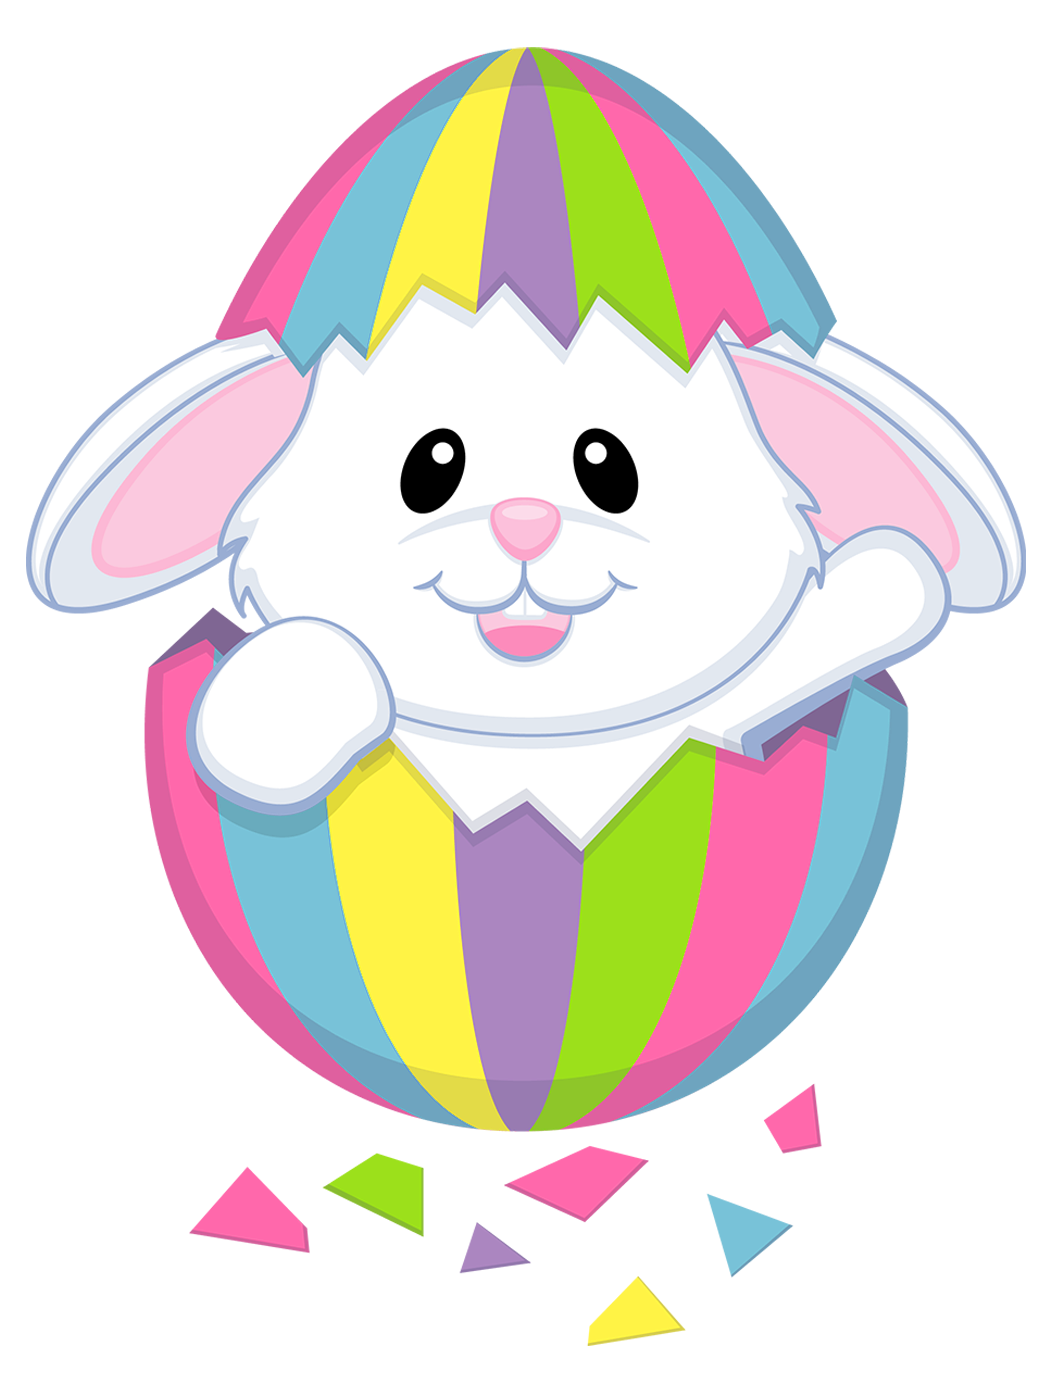 Easter Bunny Clipart & Easter Bunny Clip Art Images.